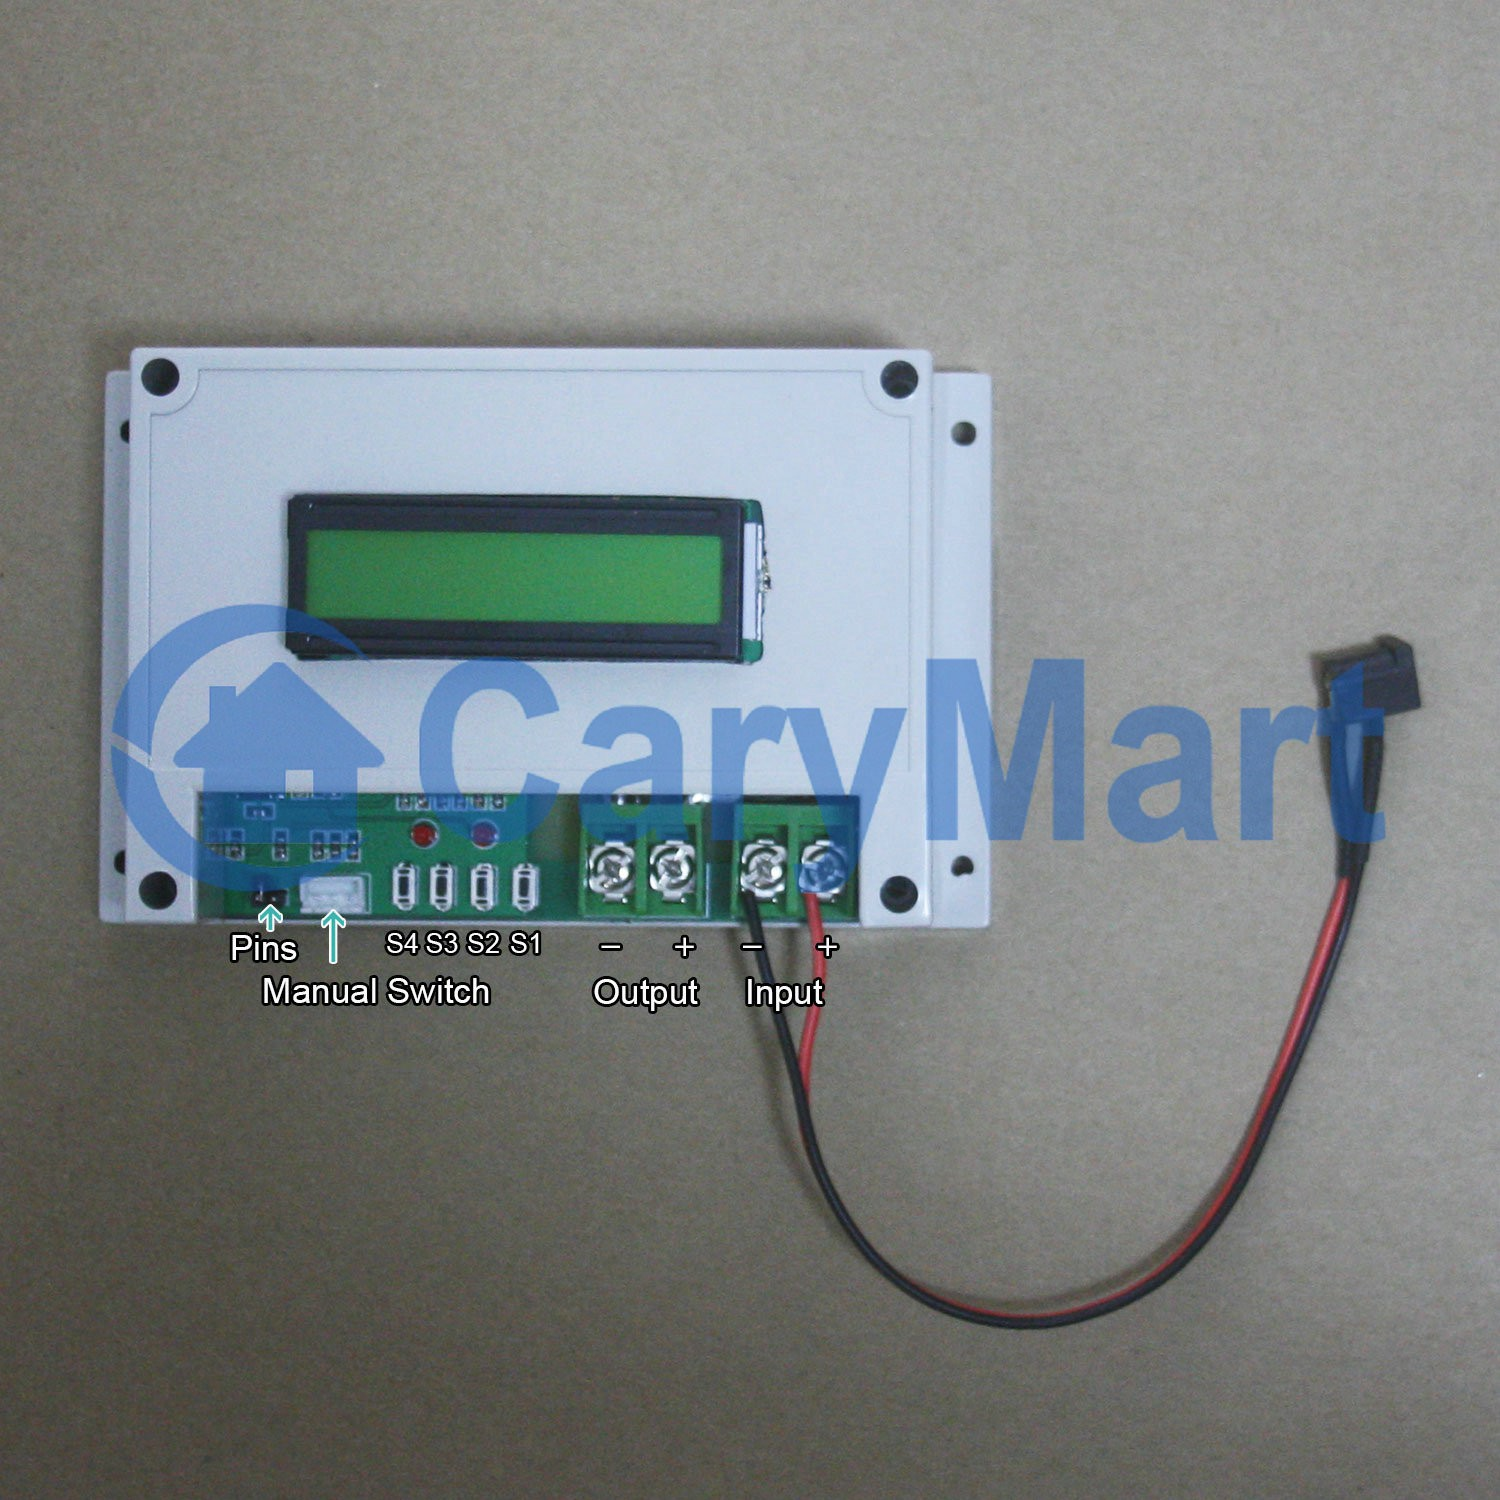 Digital Tube Circuit Board Remote Controls Dc Motor Start Stop Forward Reverse Controlcircuit This Is Can Be A Reversing Controller With Capability You Rotate The In Positive Or Reversal Direction